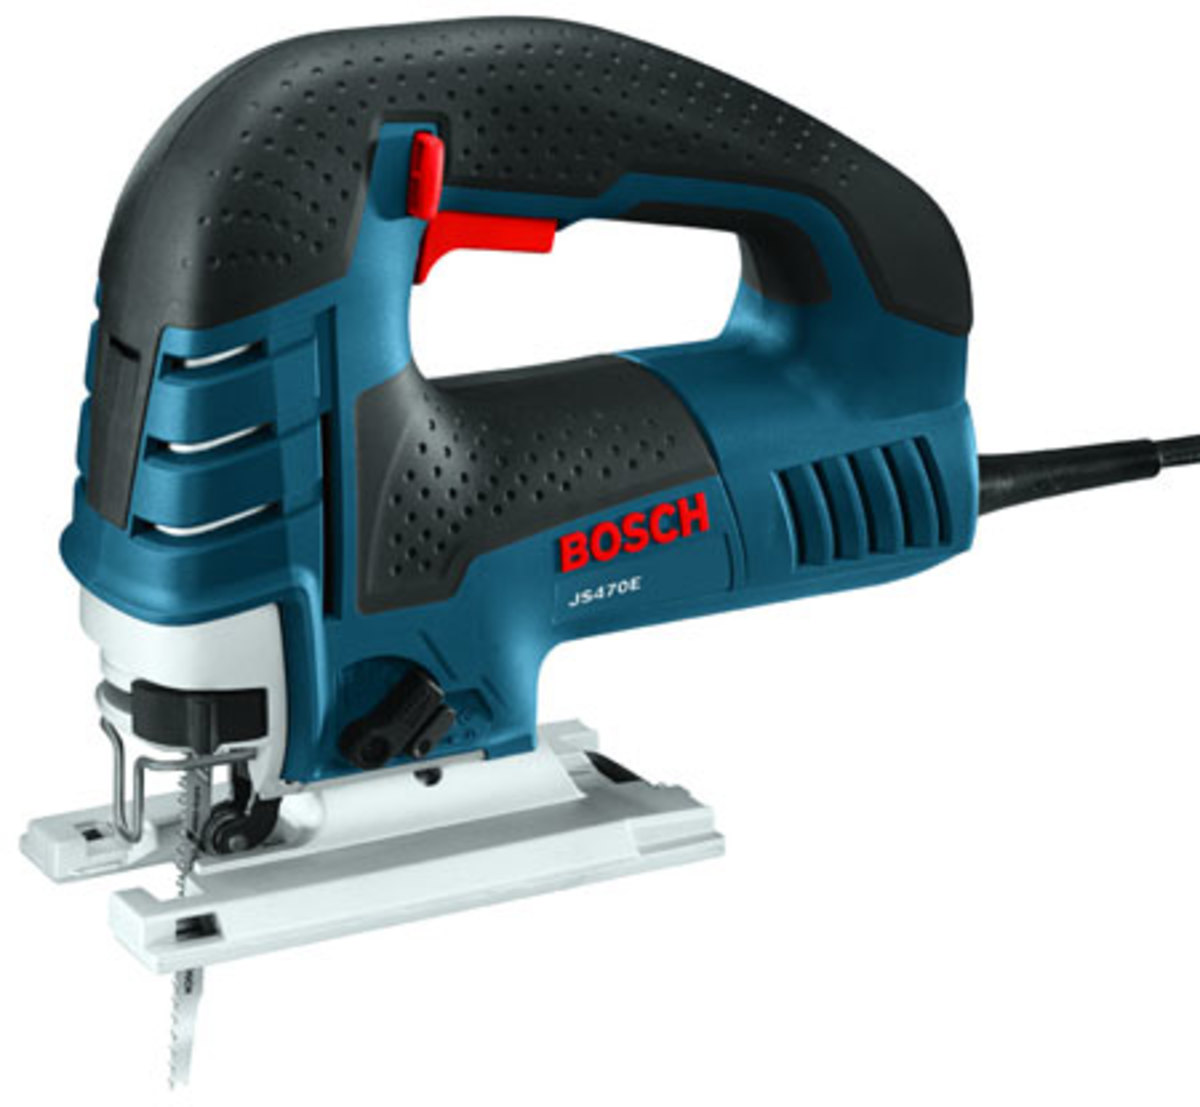 Utility of Bosch JS470E Variable Speed Jigsaw in Metal Working